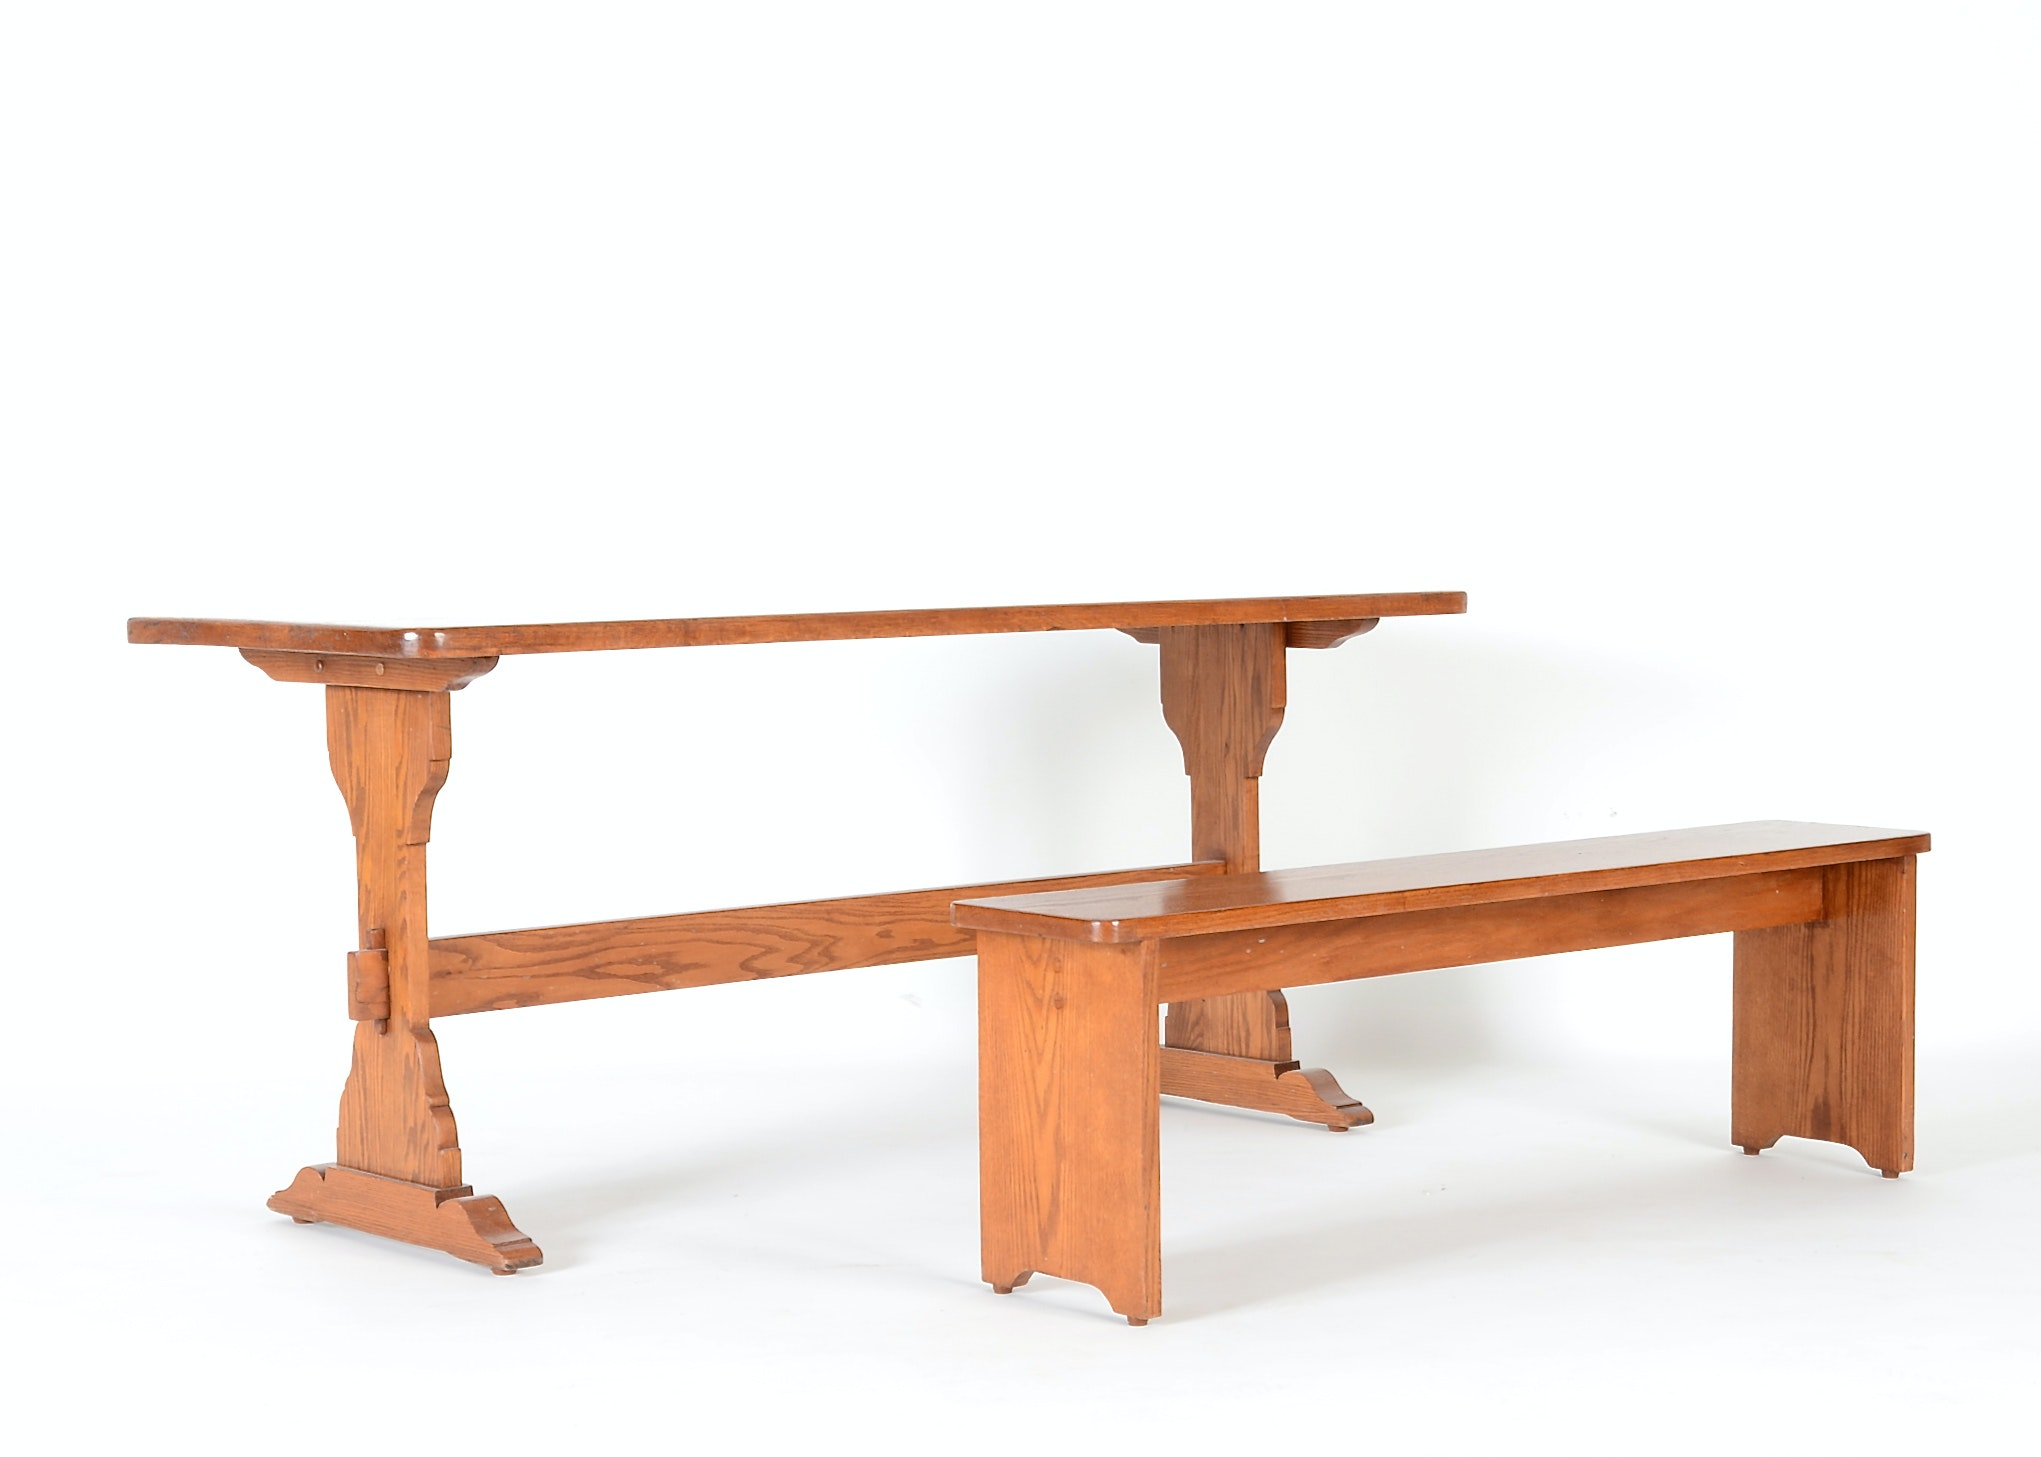 Oak Trestle Dining Table and Bench EBTH : DSC4217JPGixlibrb 11 from www.ebth.com size 880 x 906 jpeg 58kB